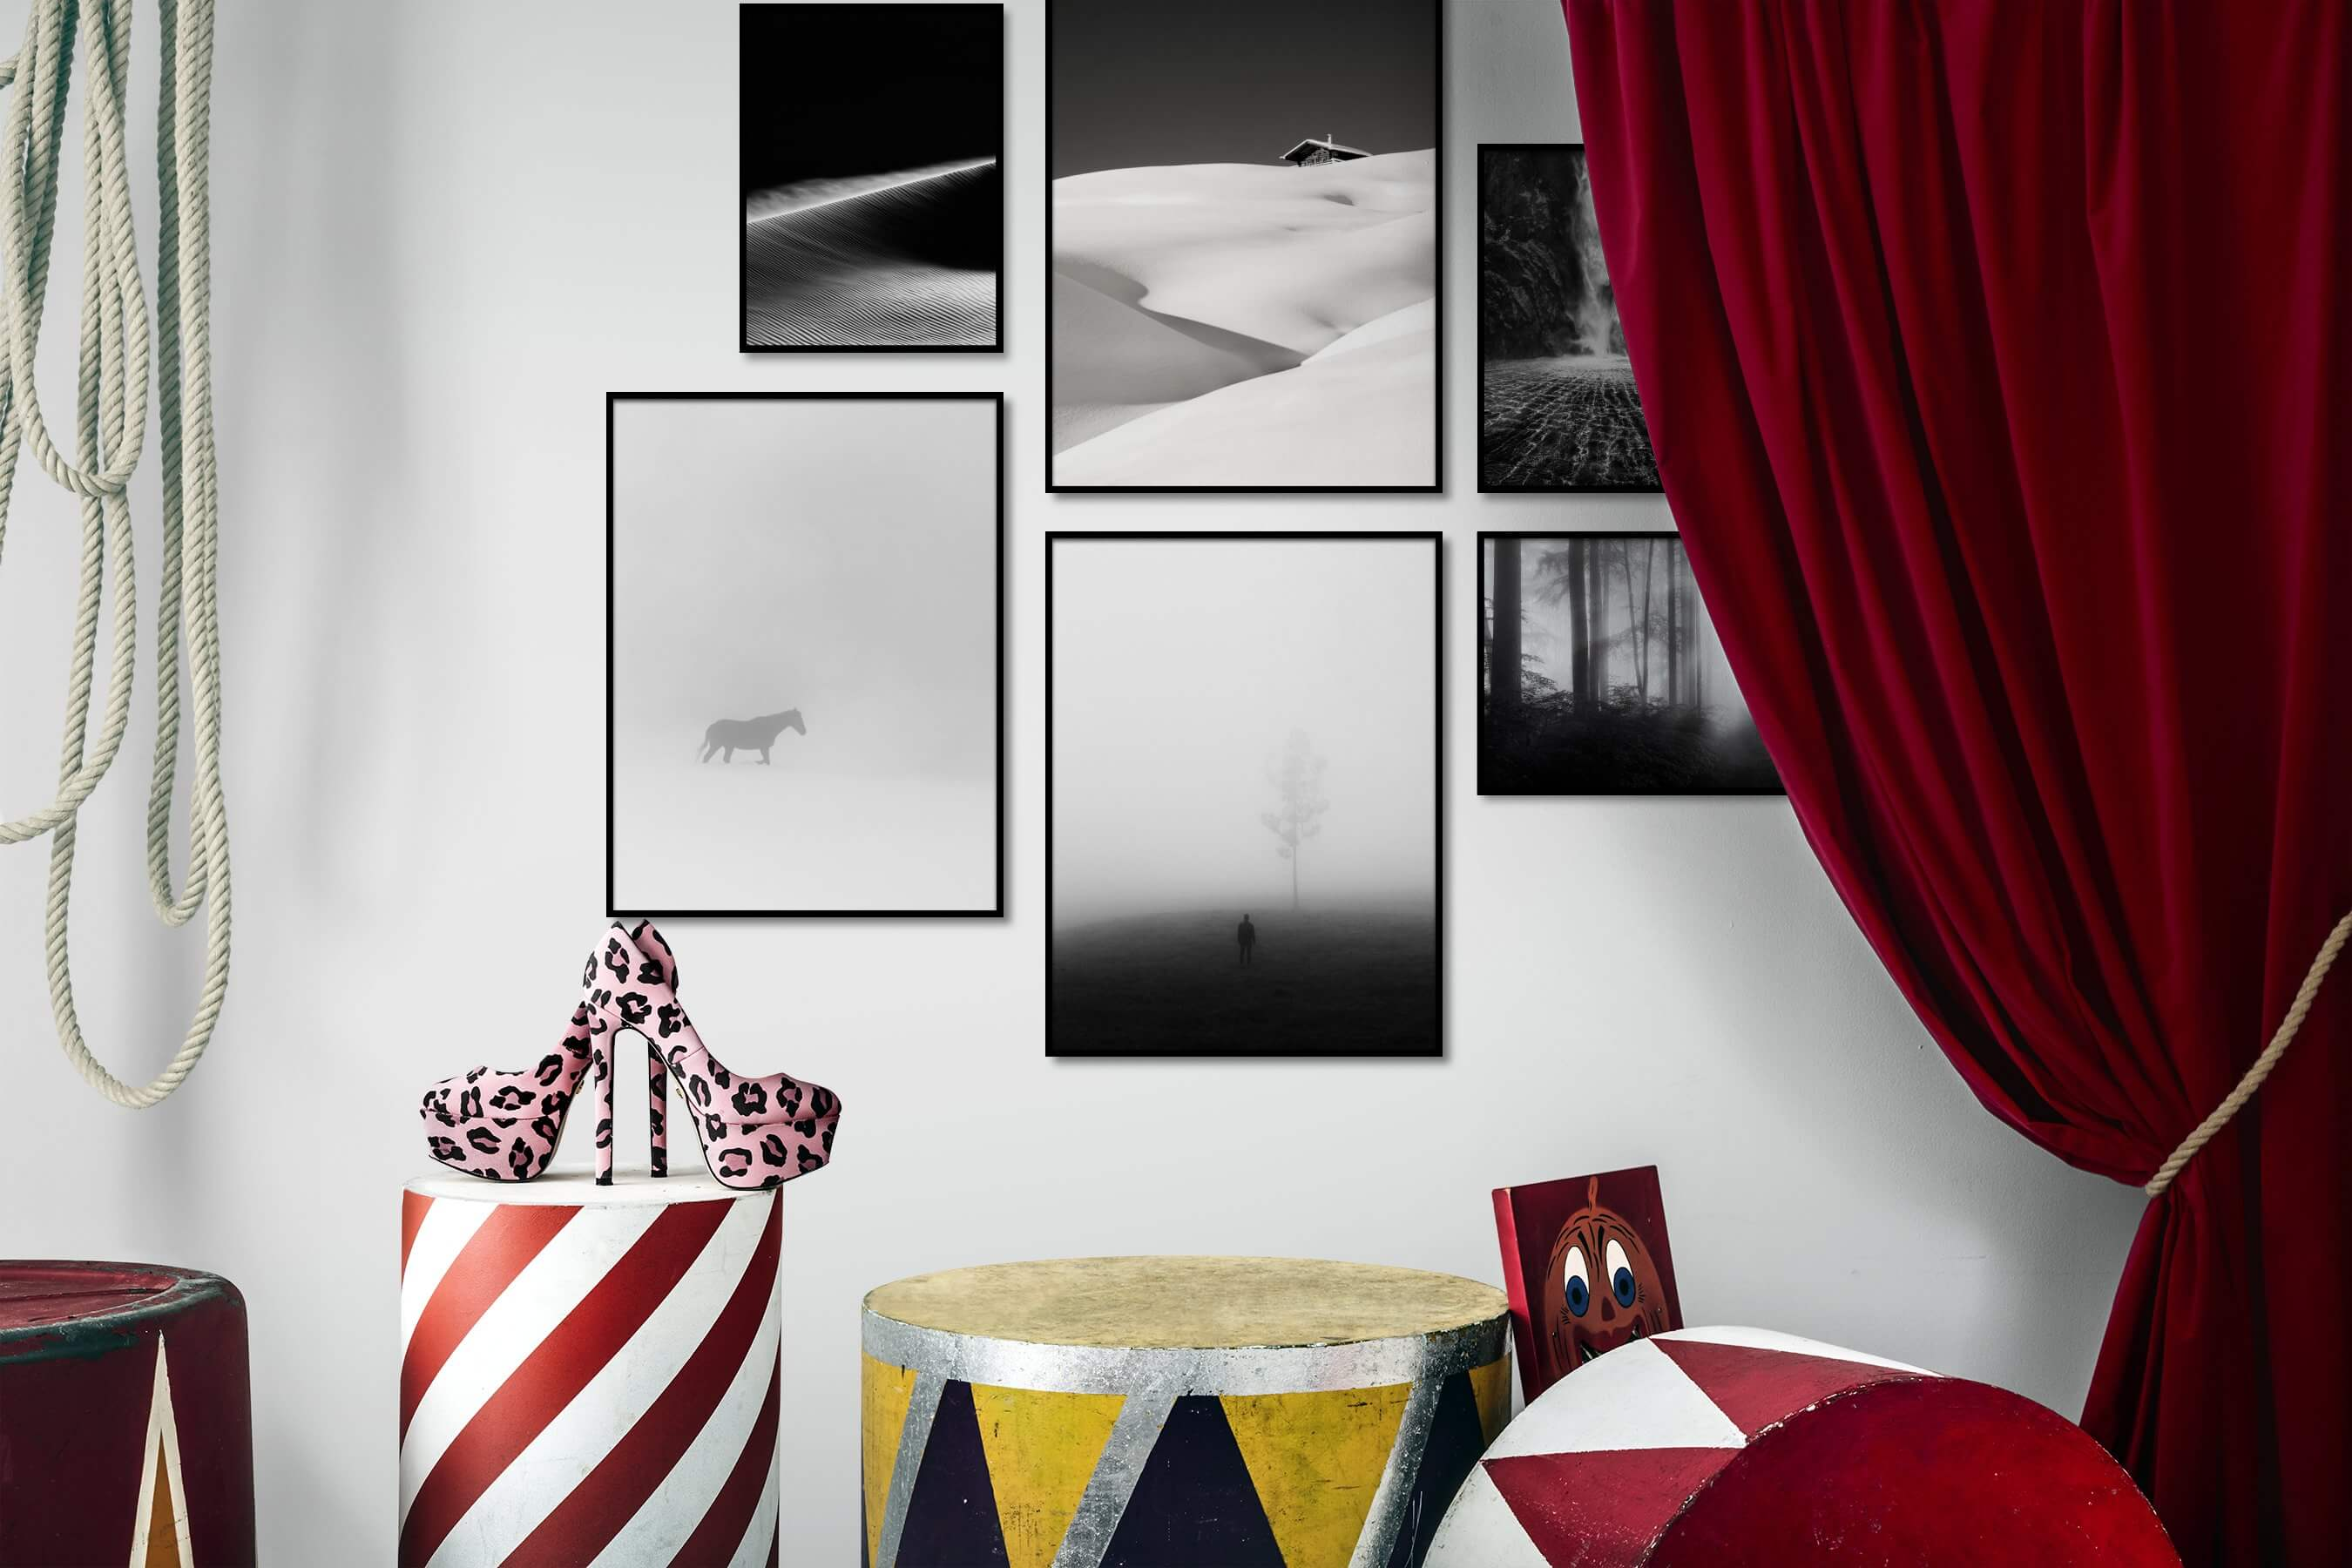 Gallery wall idea with six framed pictures arranged on a wall depicting Black & White, Dark Tones, For the Minimalist, Nature, Country Life, Animals, Bright Tones, and Mindfulness